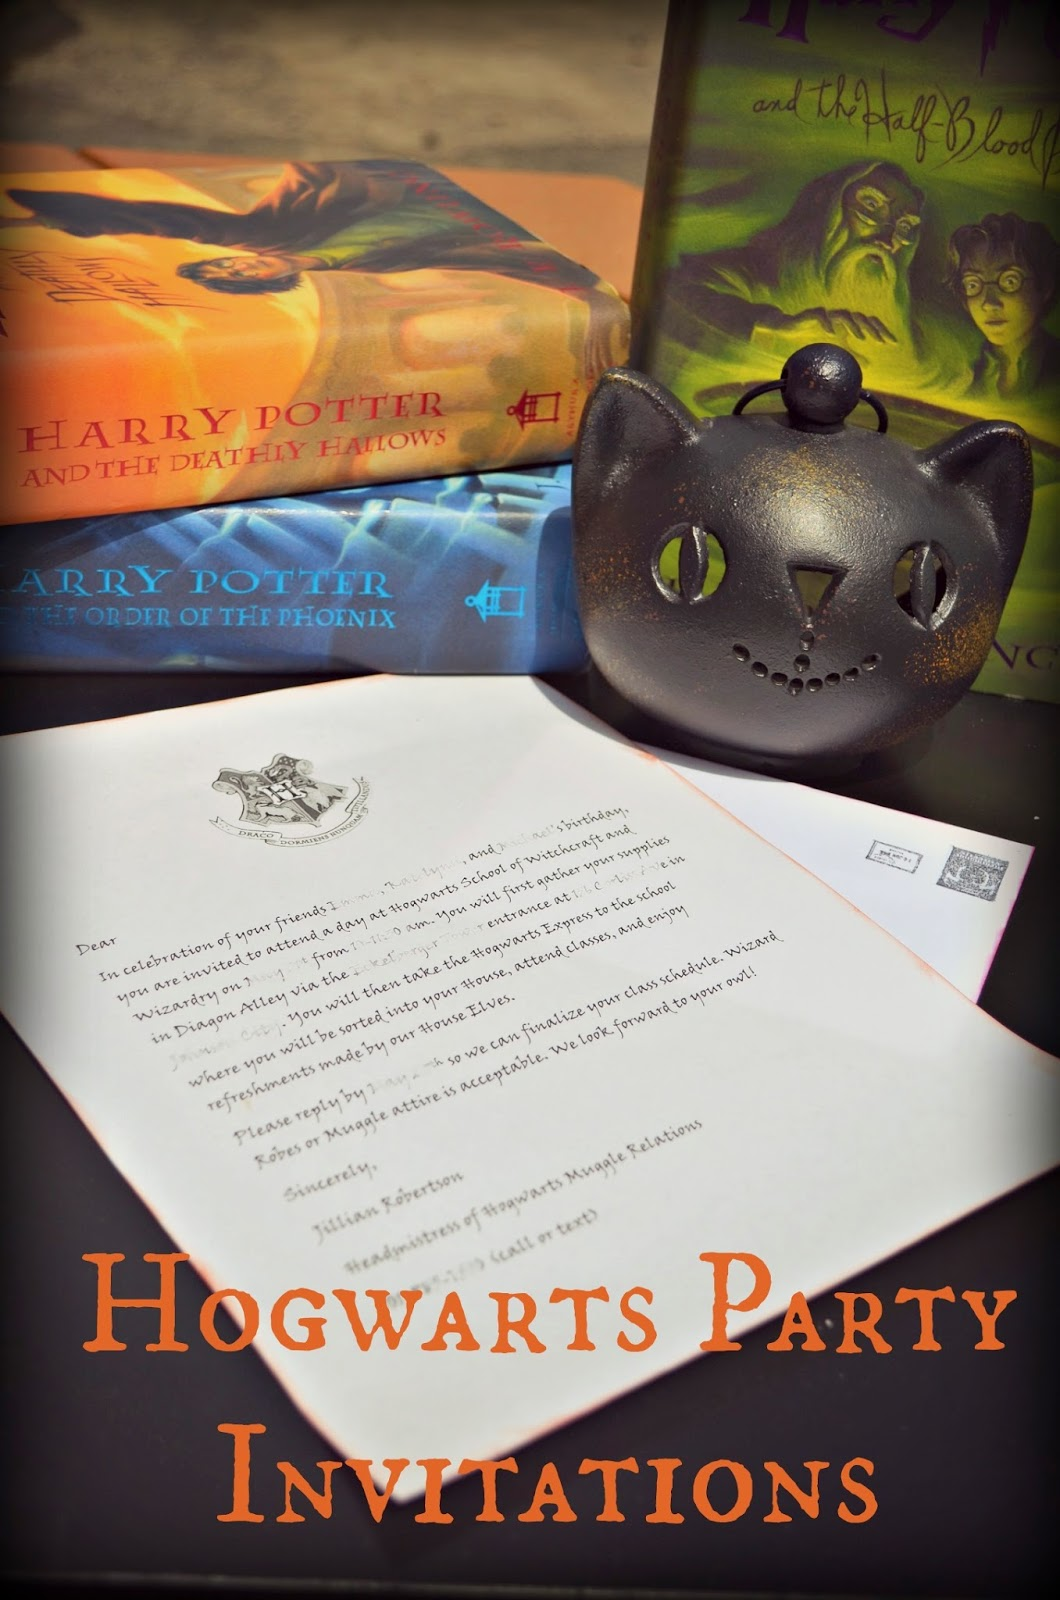 Harry Potter Hogwarts Party Invitations! #harrypotter #hp #hogwarts #party